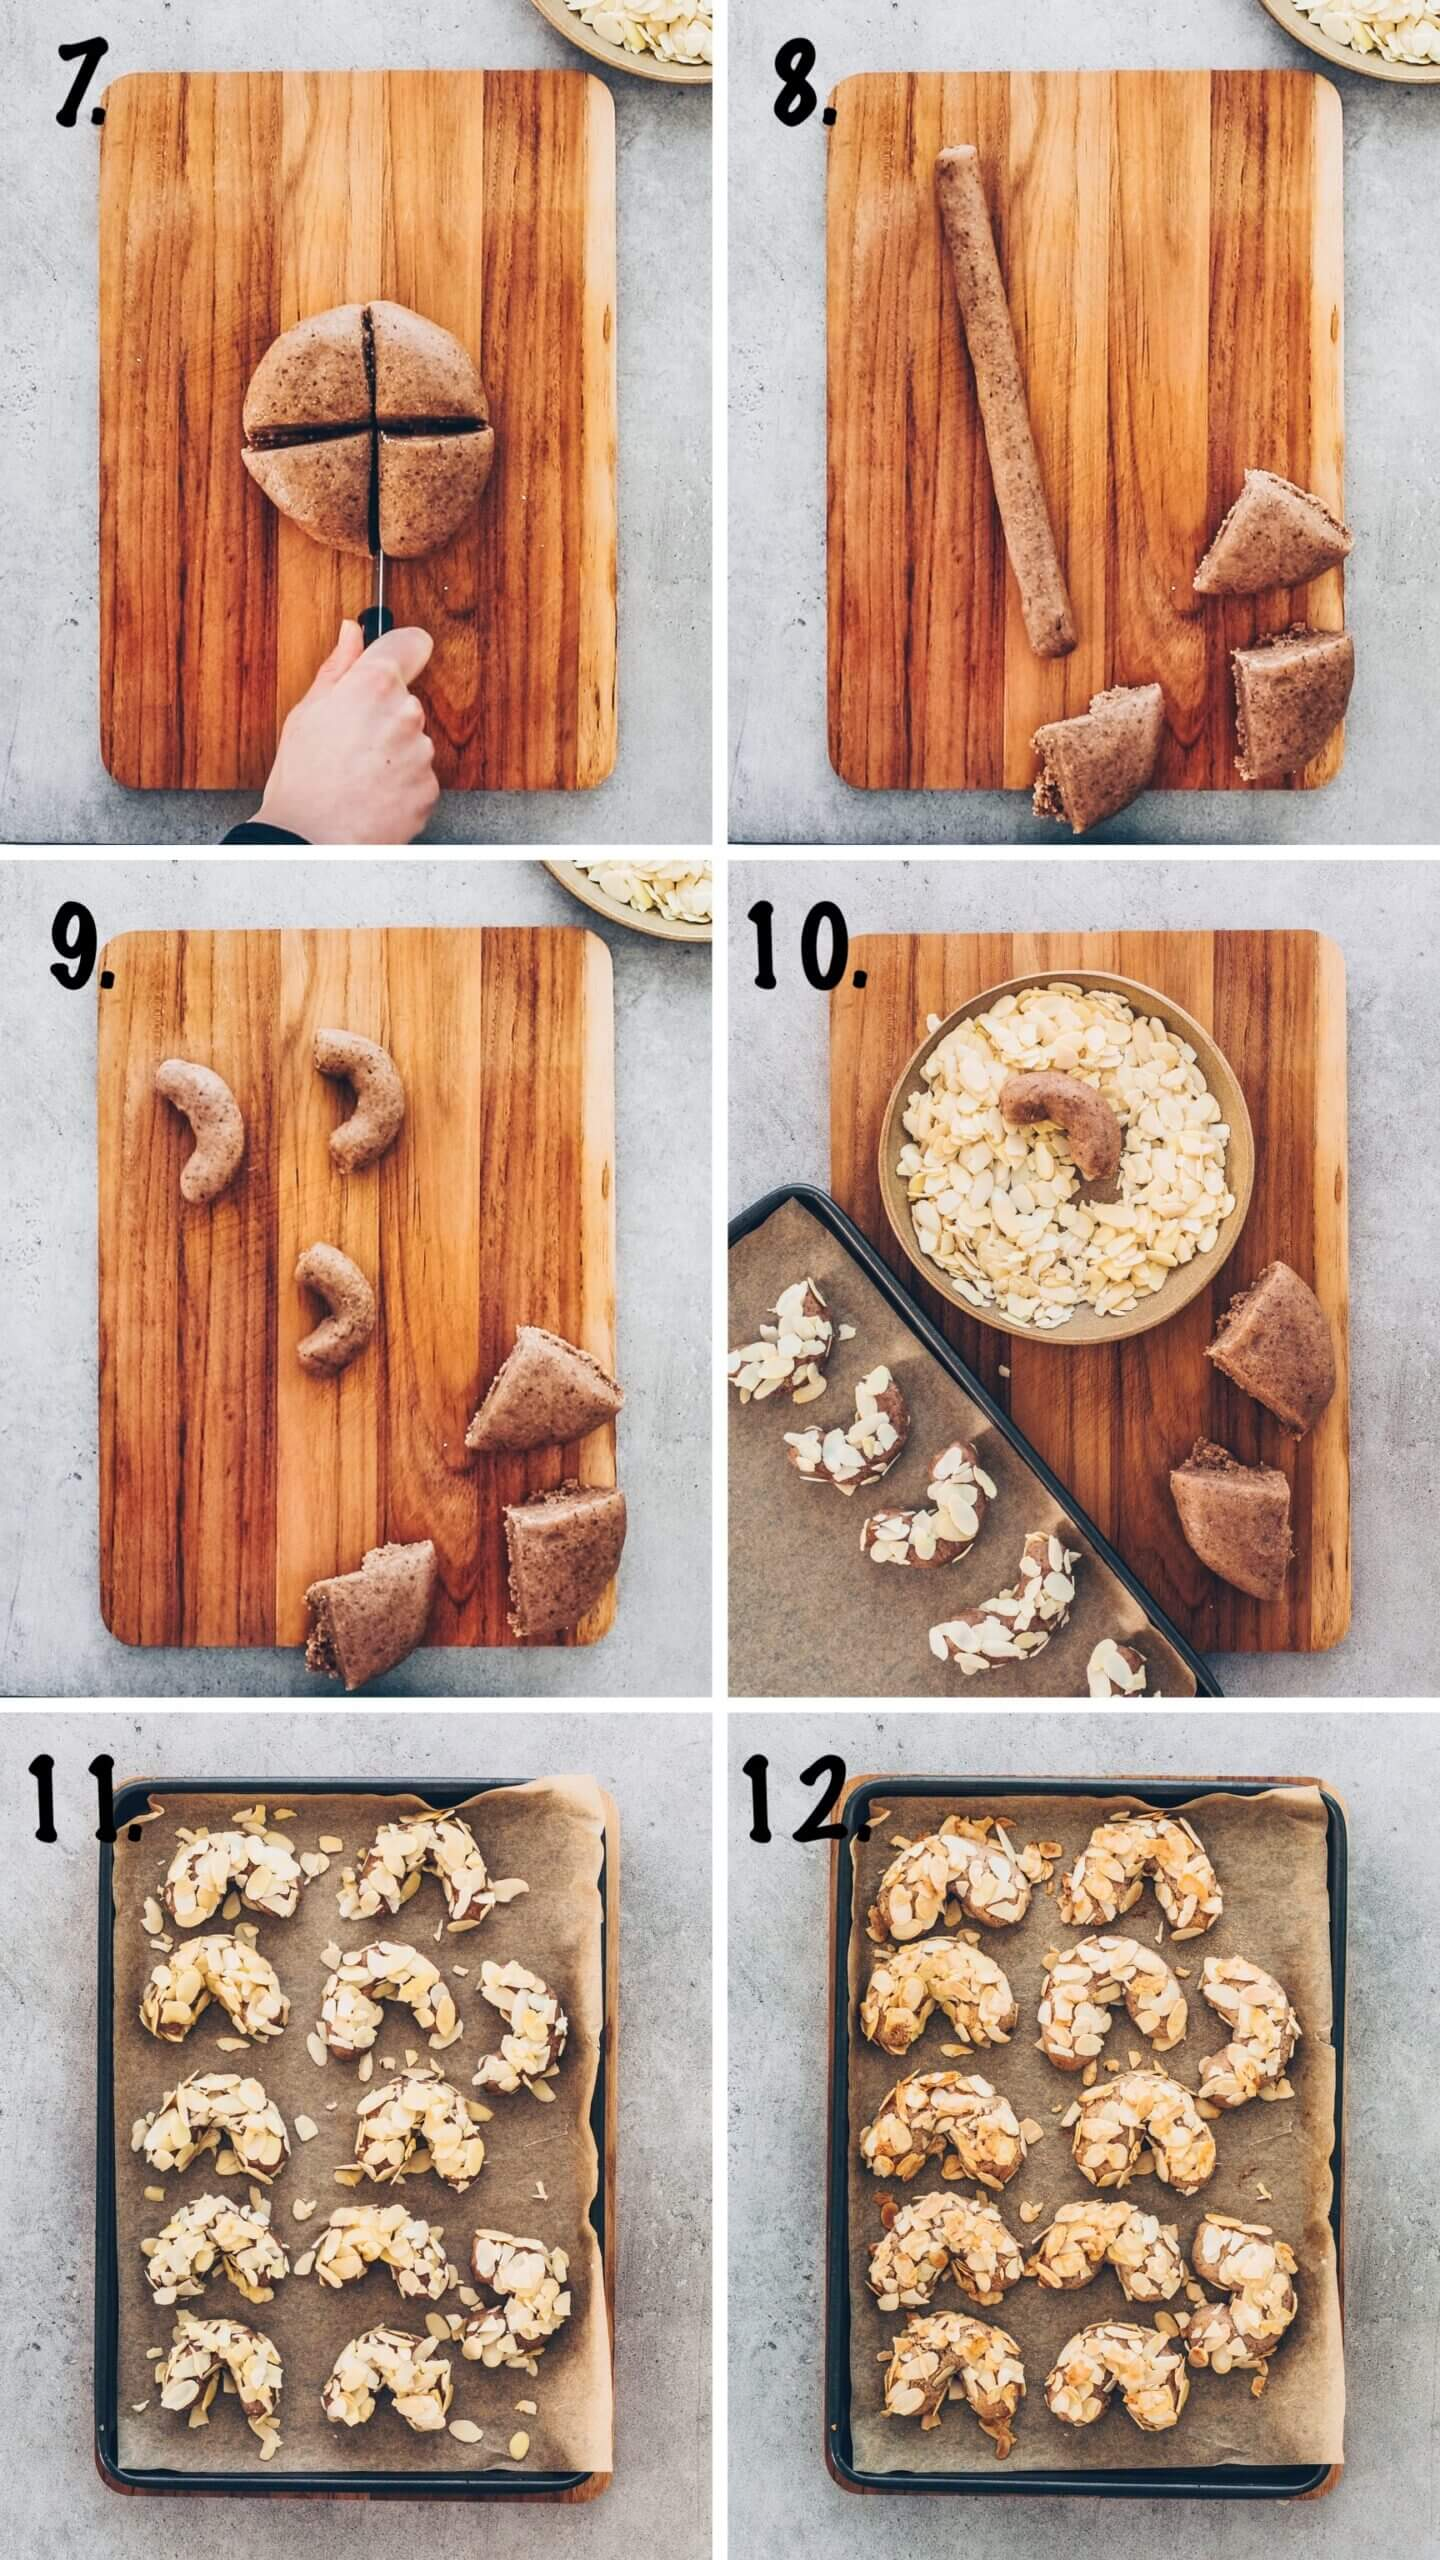 Almond Cookies step-by-step Instruction